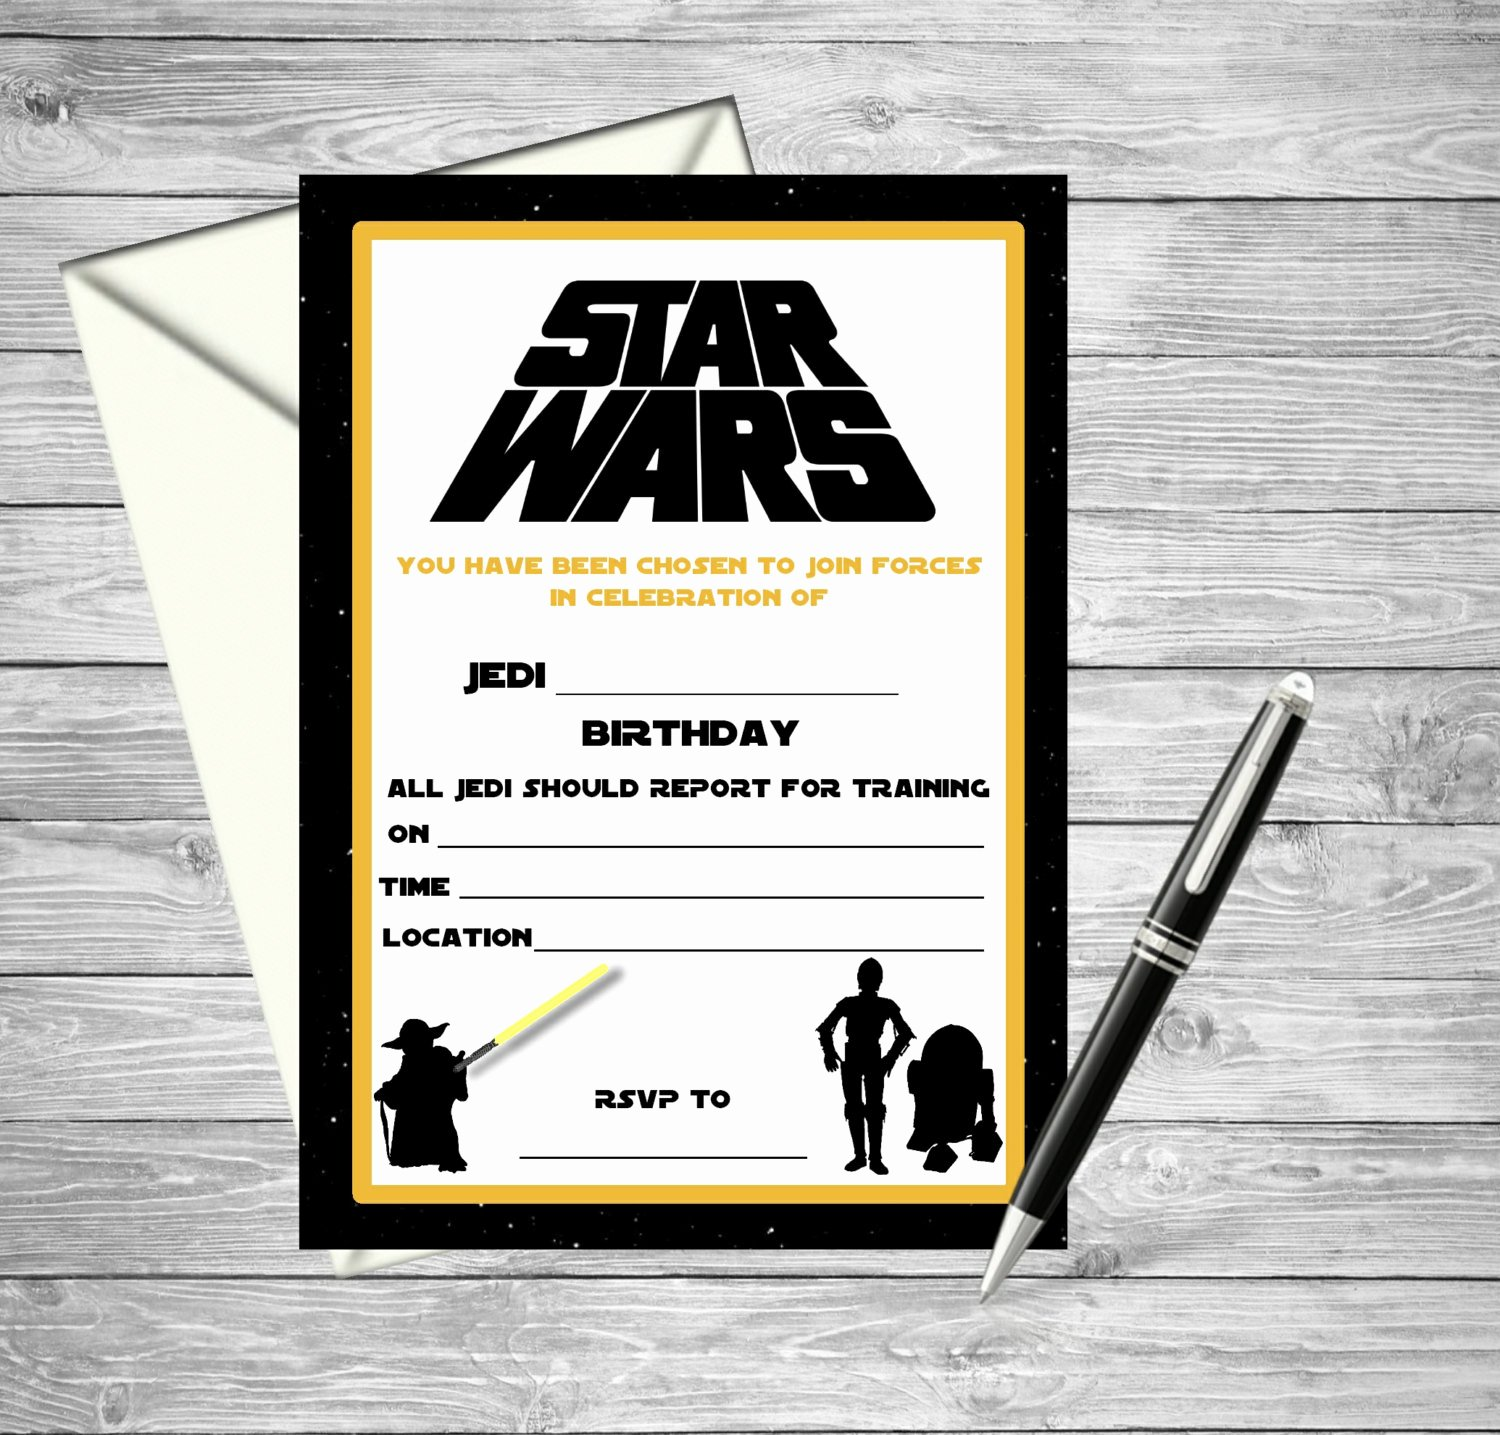 Printable Star Wars Invitation Awesome Star Wars Printable Birthday Invitation Fill by